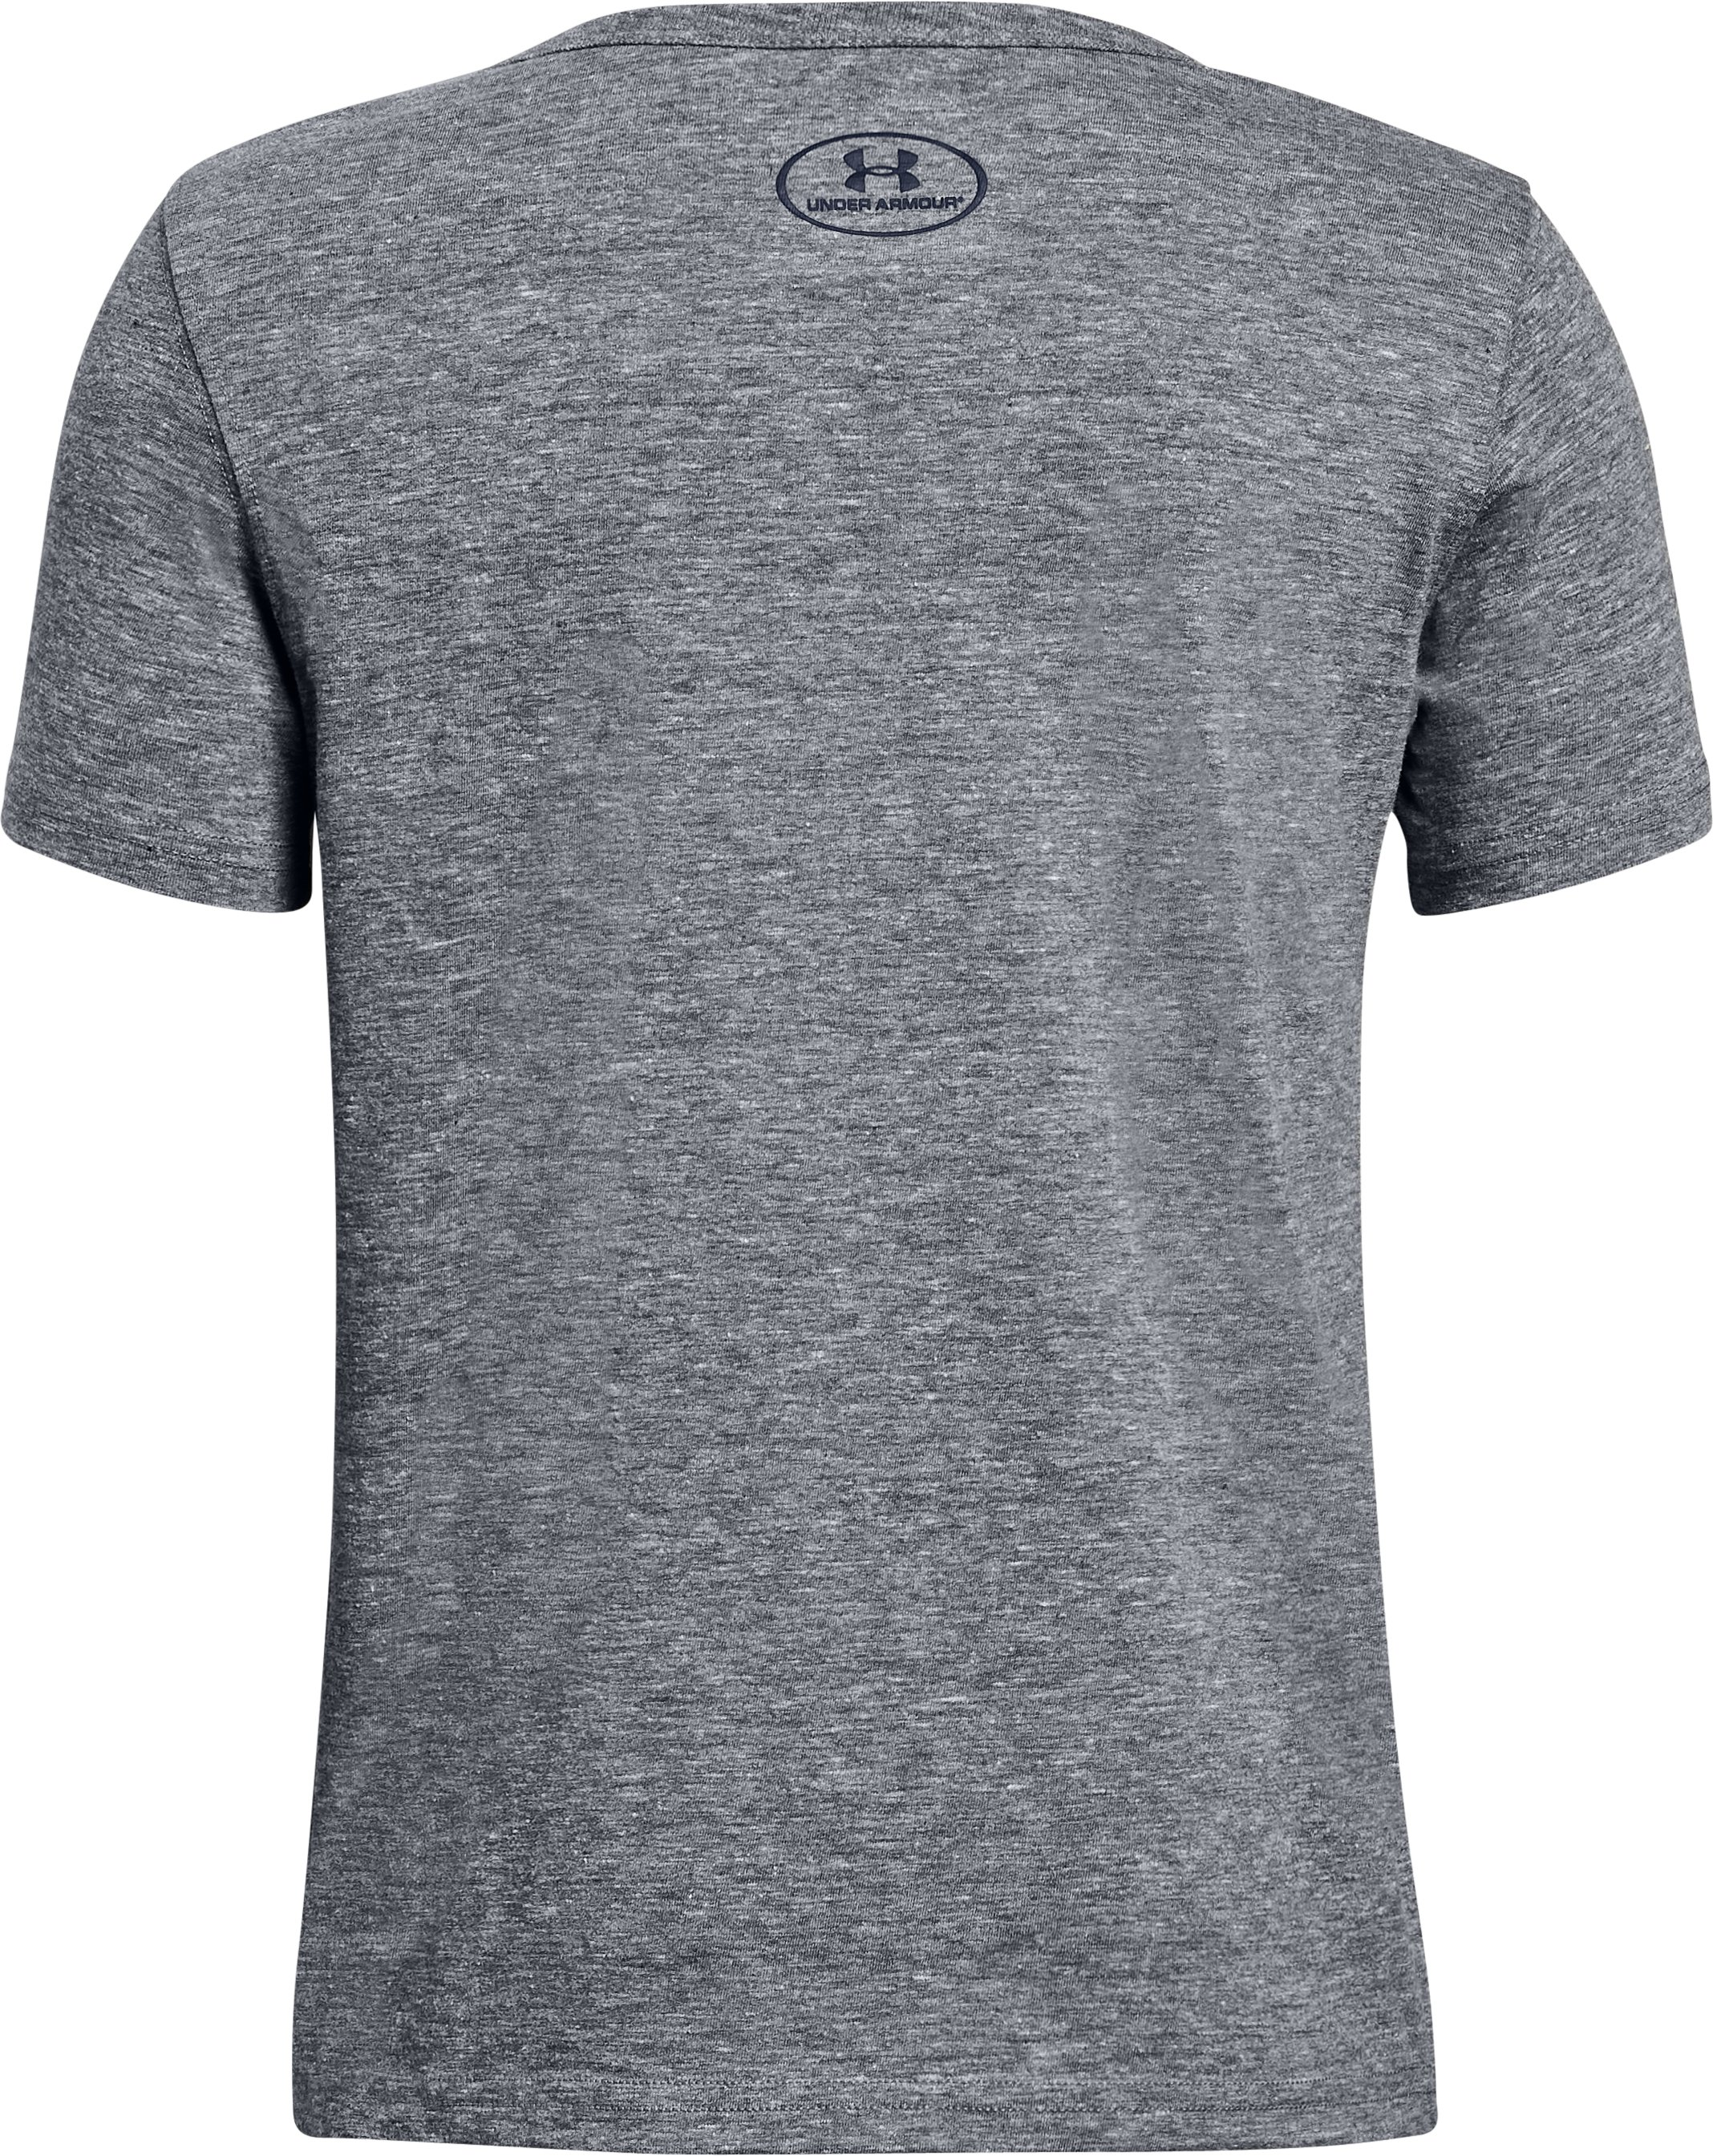 Boys' Naval Academy Iconic Tri-Blend Crew, Gray, undefined